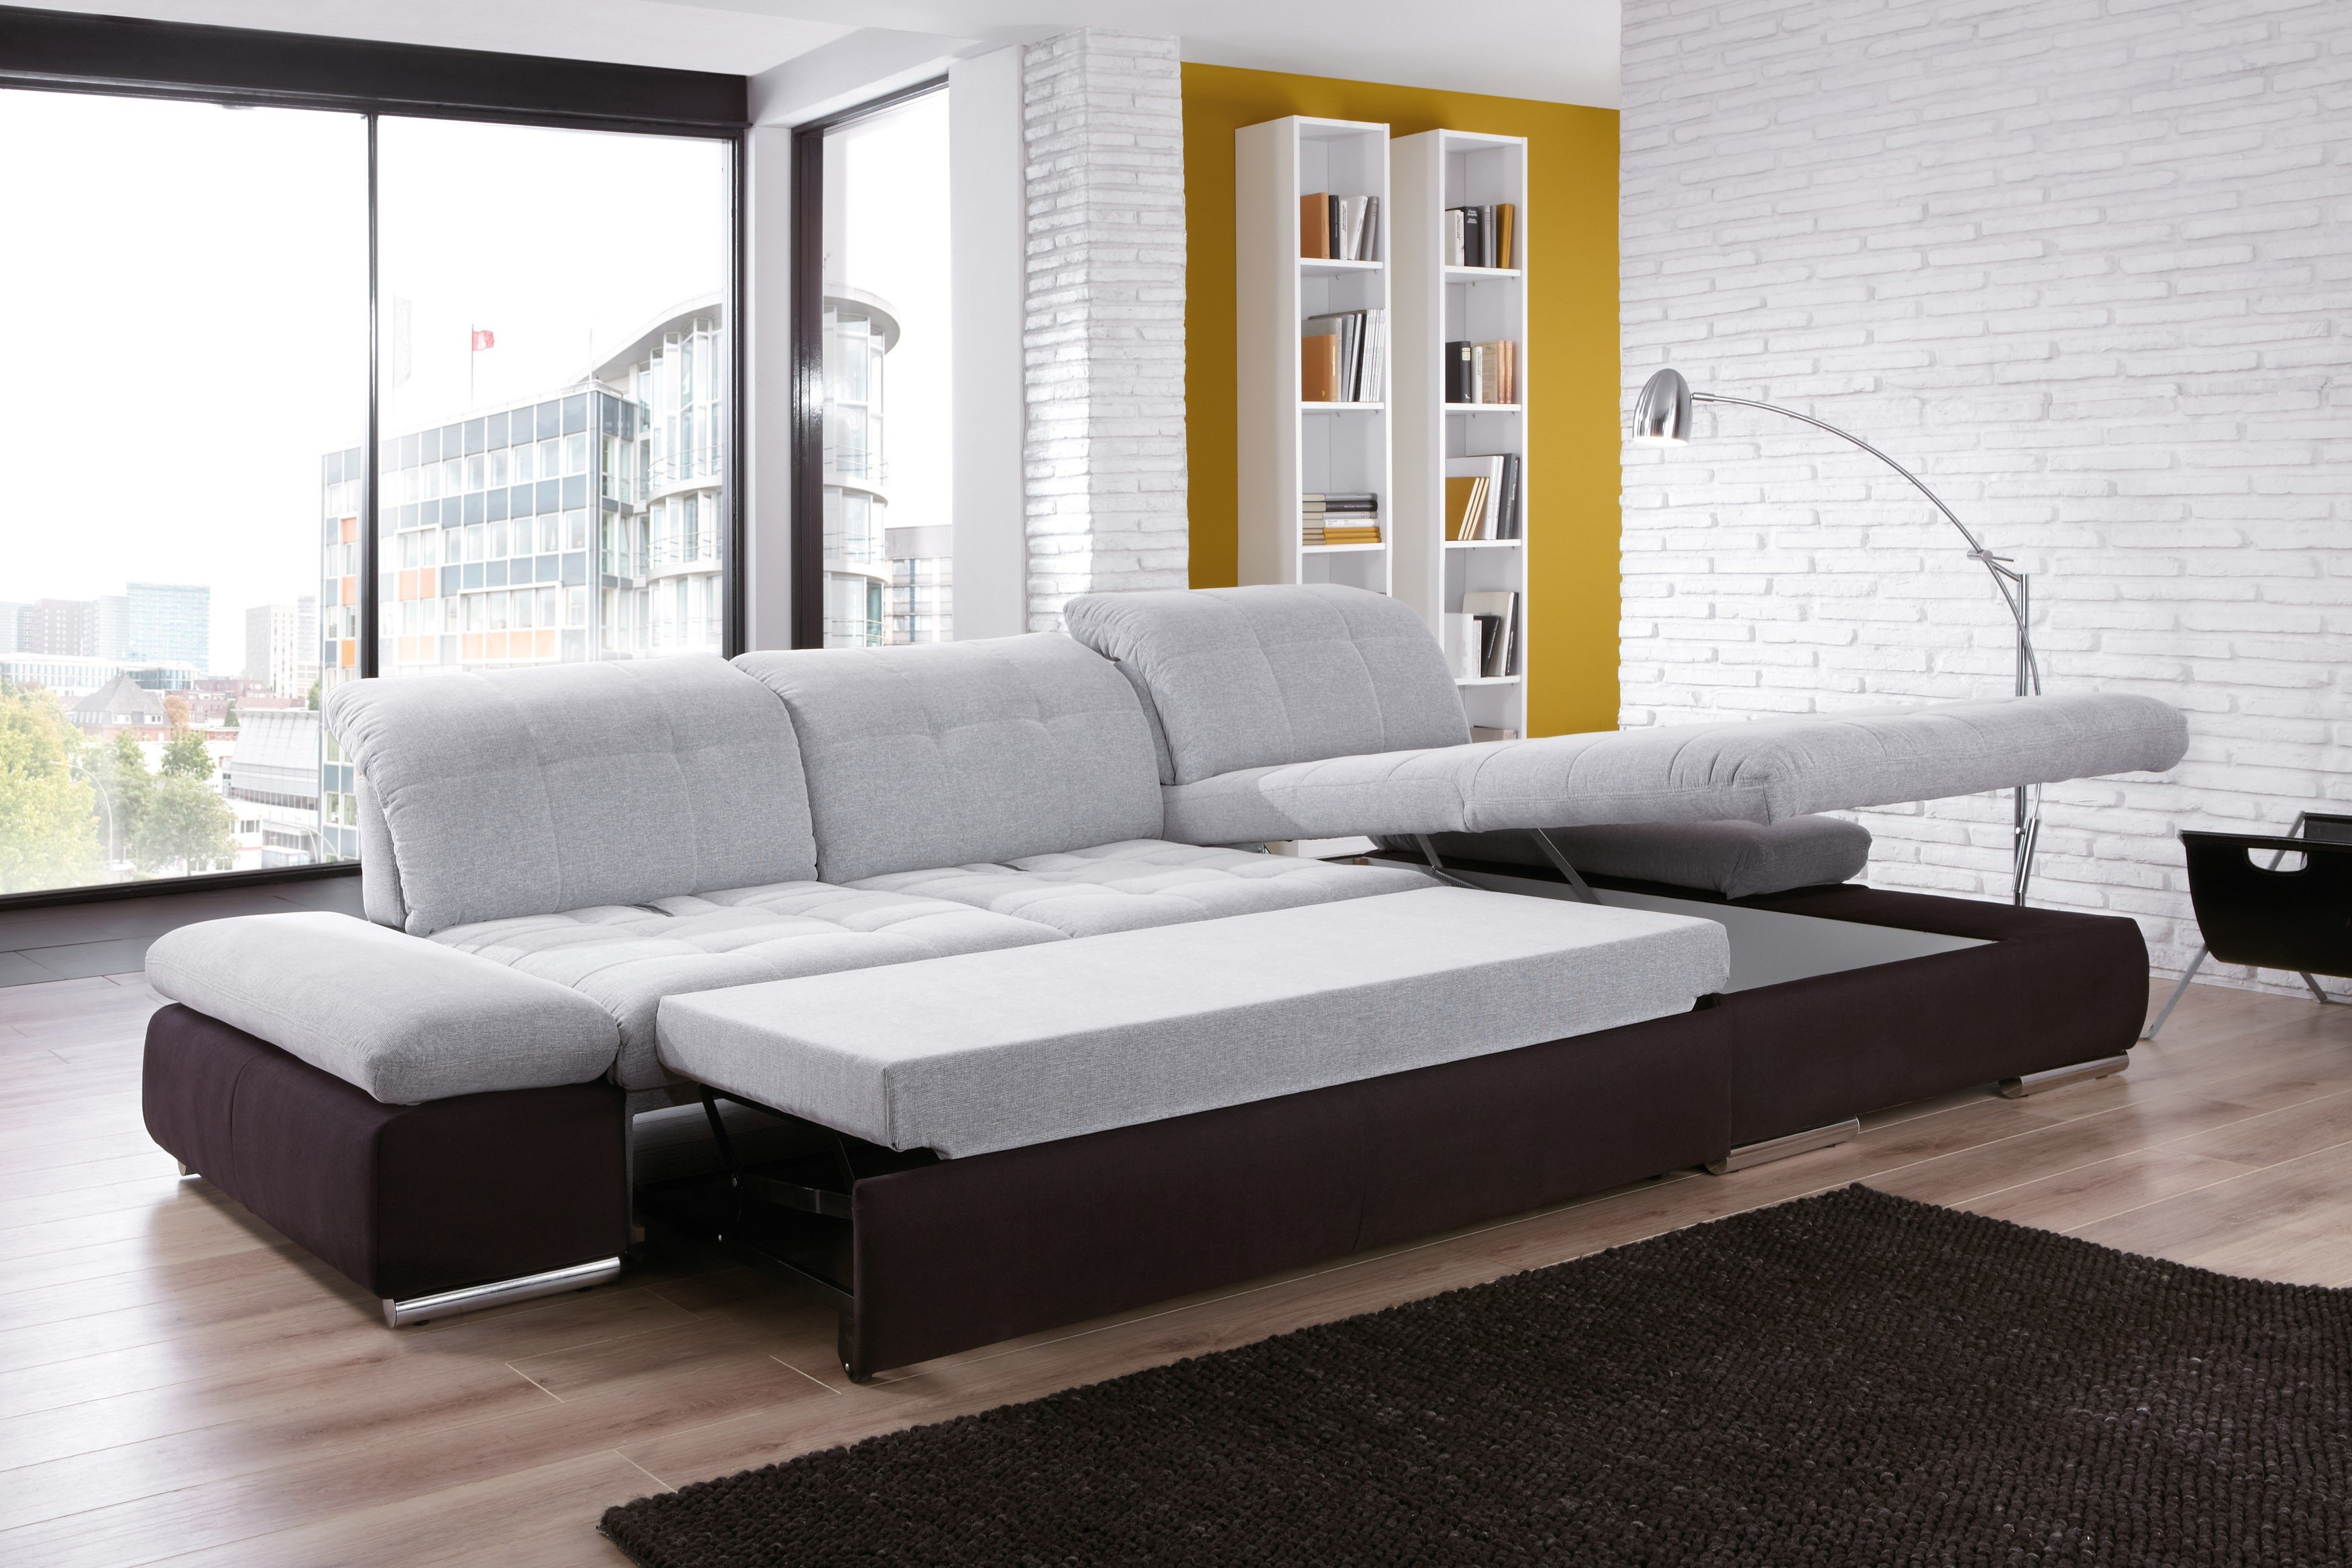 polsterm bel online kaufen hochwertige polsterm bel f r. Black Bedroom Furniture Sets. Home Design Ideas